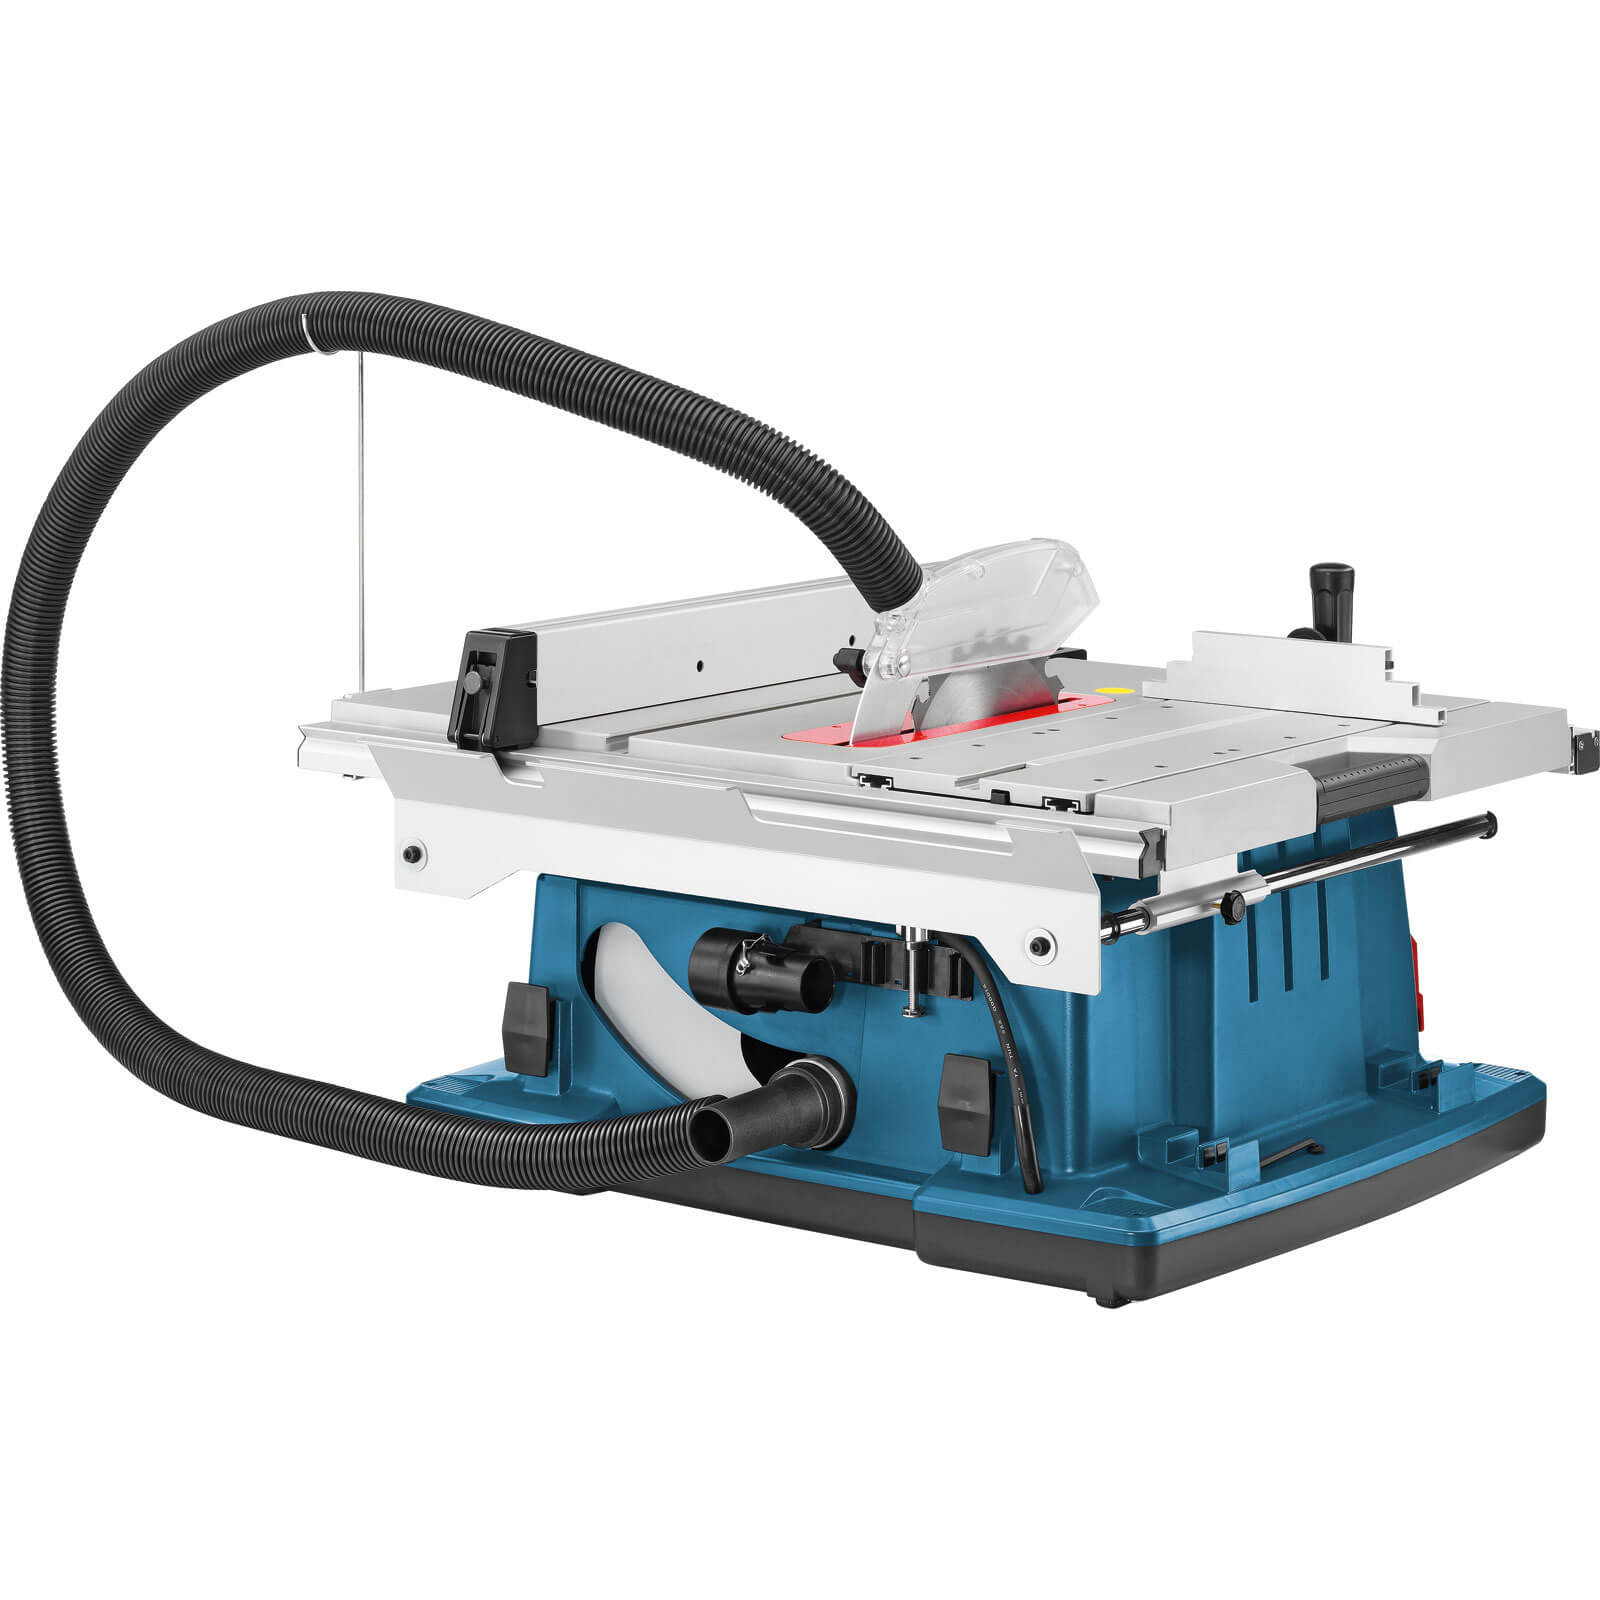 Image of Bosch GTS 10 XC Benchtop Table Saw 110v